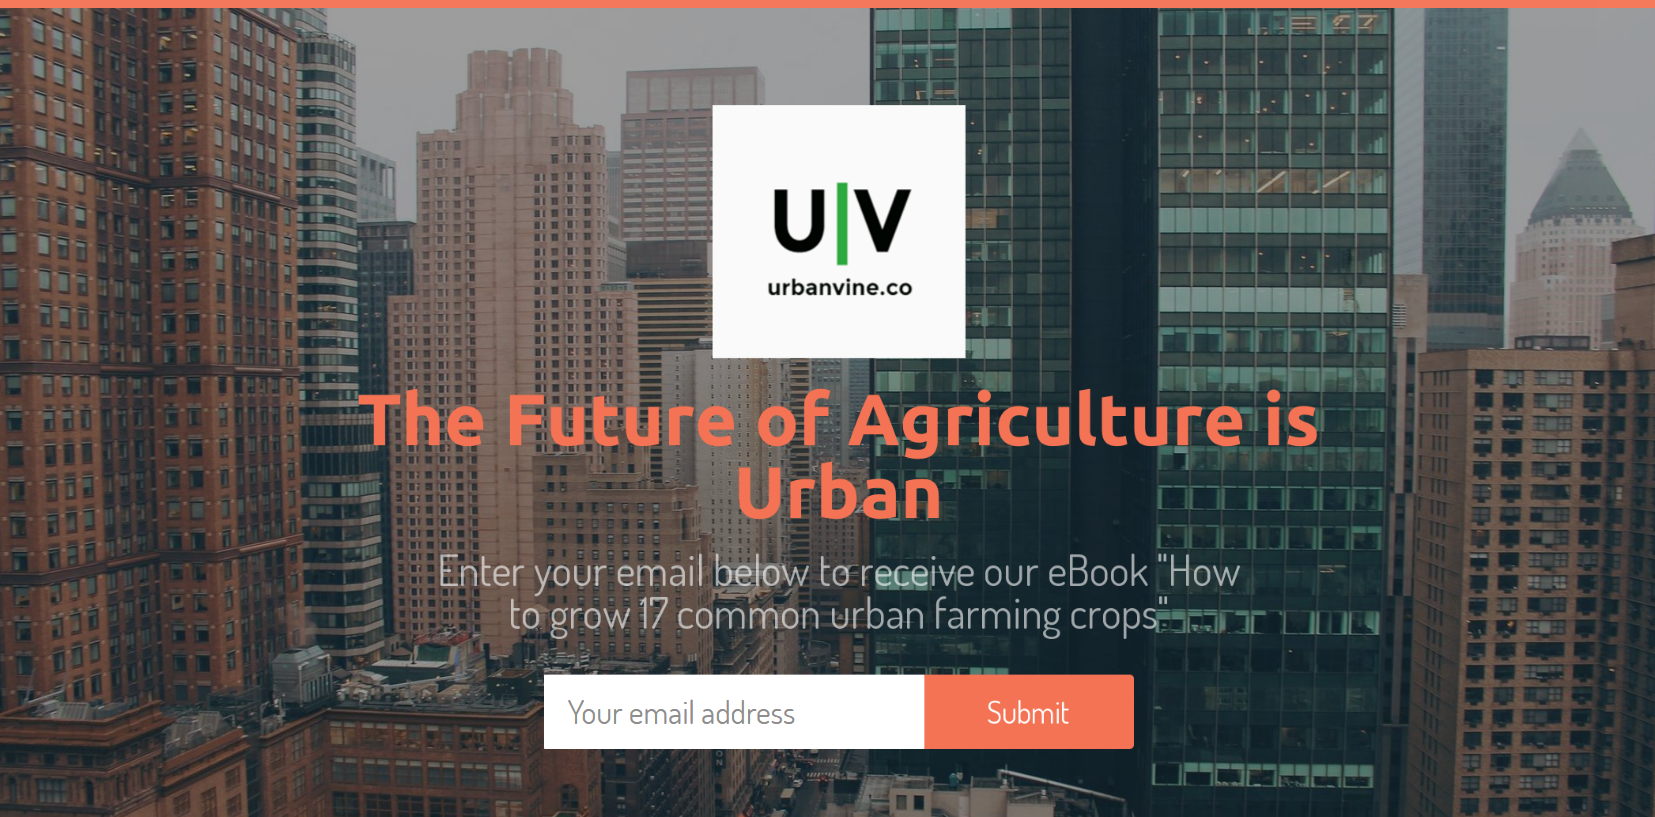 urban vine co urban farming - Raised Panel Restaurant 2016